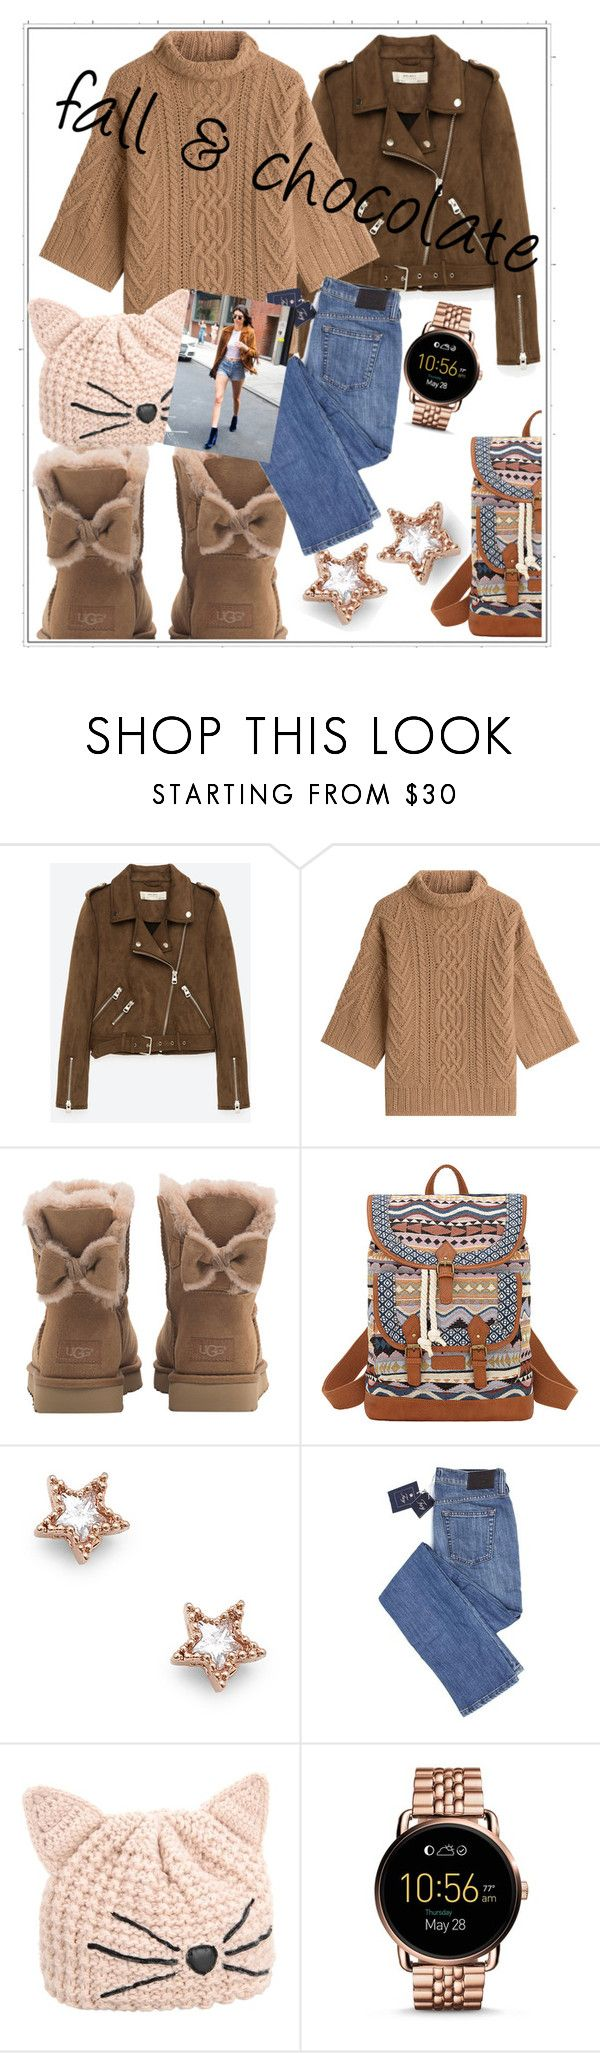 """shool day"" by frupapp on Polyvore featuring Freebird, MaxMara, UGG, Bandana, Sole Society, Karl Lagerfeld, FOSSIL, StreetStyle, school and Work"